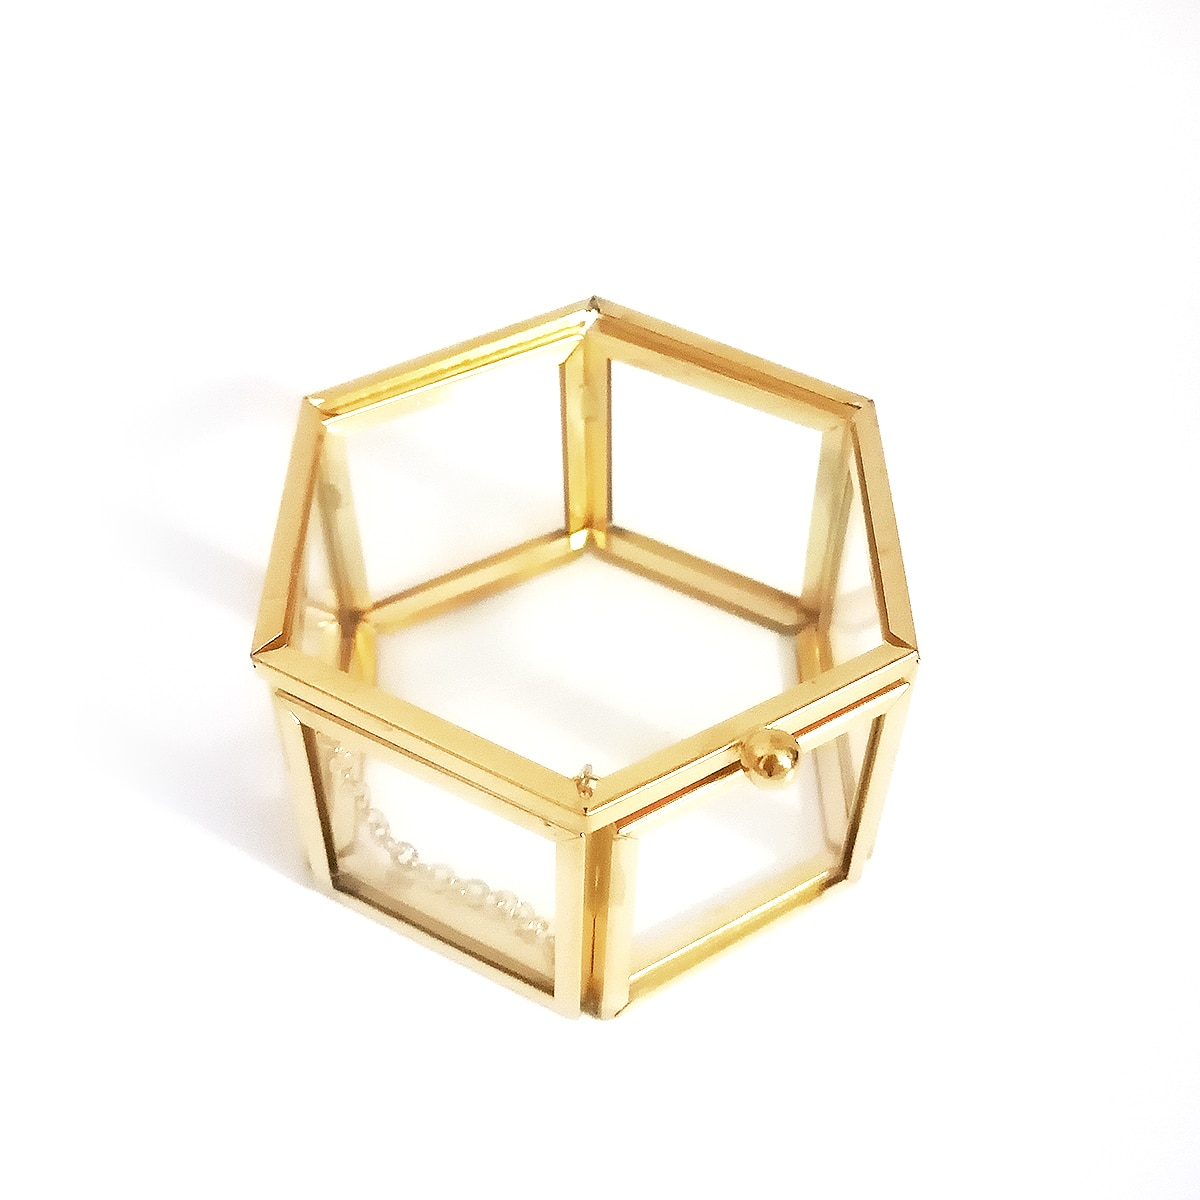 Empty Geometric Glass Treasure Box Engagement Ring Box Gold Rustic Jewelry Box Wedding Gift